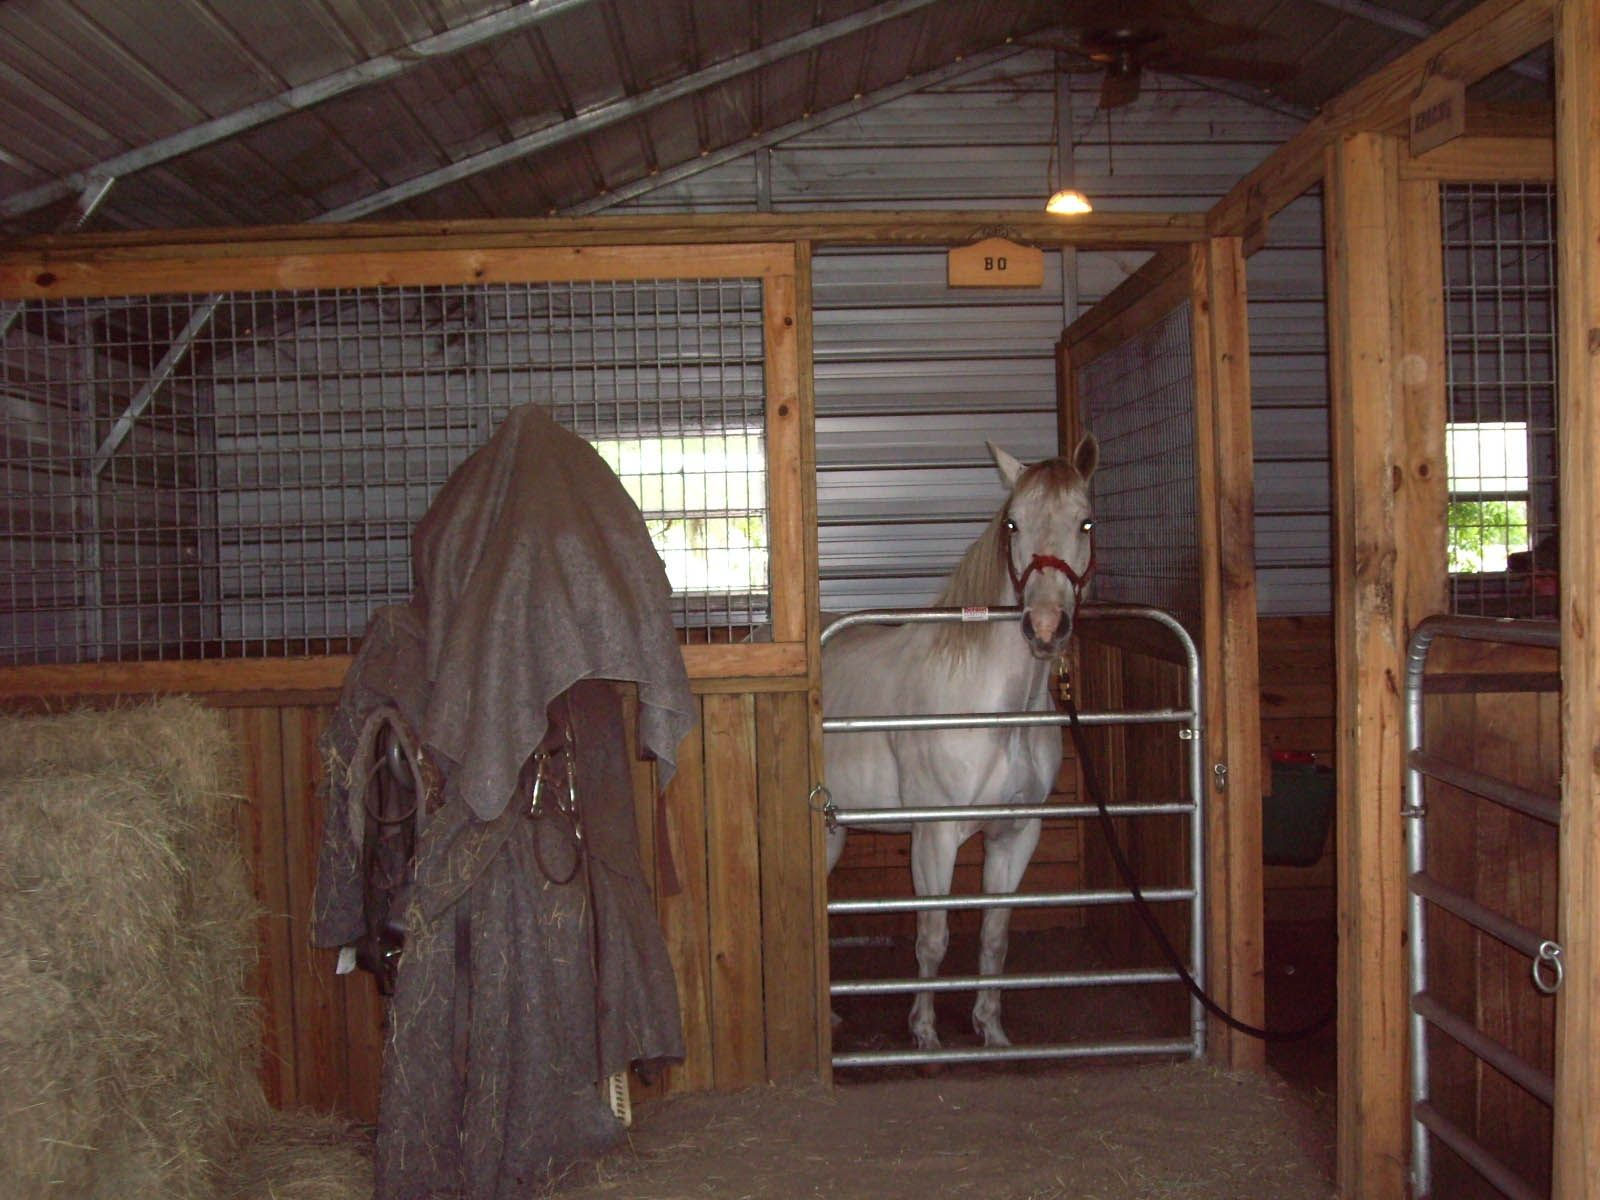 Budget interior barn idea not the gate for a stall door for Horse stall door plans